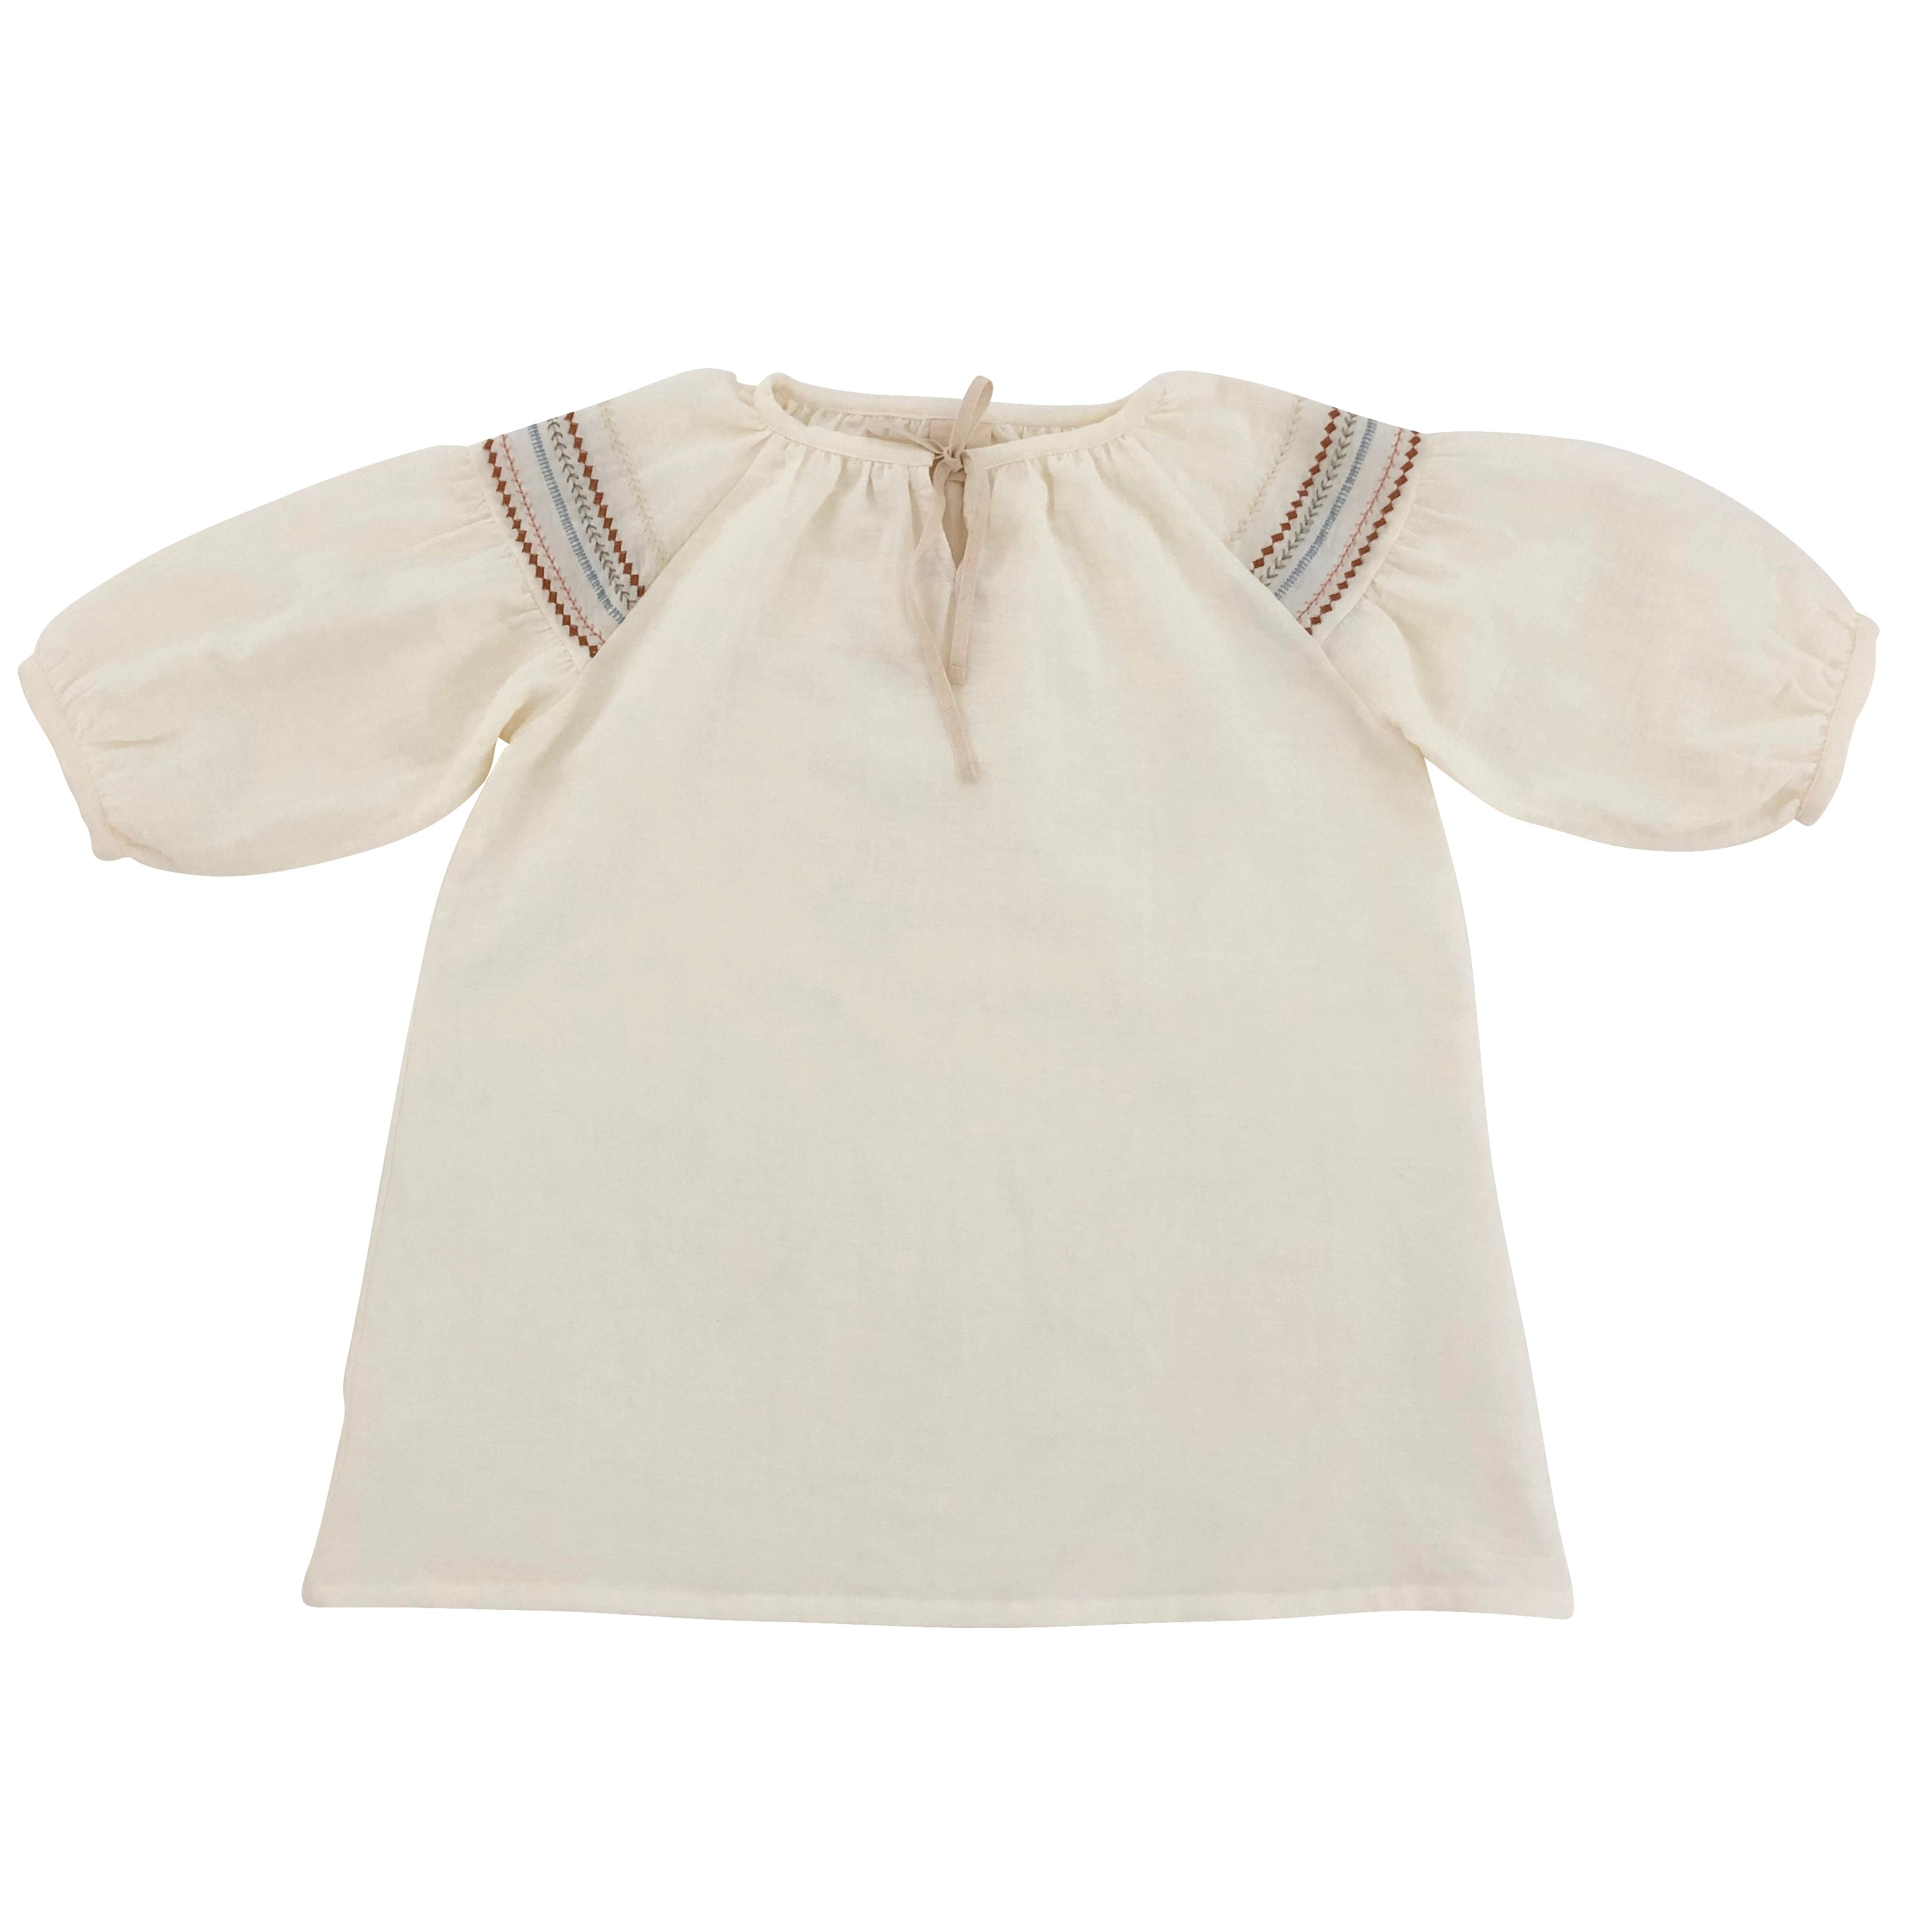 Liilu Mia Baby & Kid's Embroidered Folk Dress Milk Organic Cotton | BIEN BIEN www.bienbienshop.com